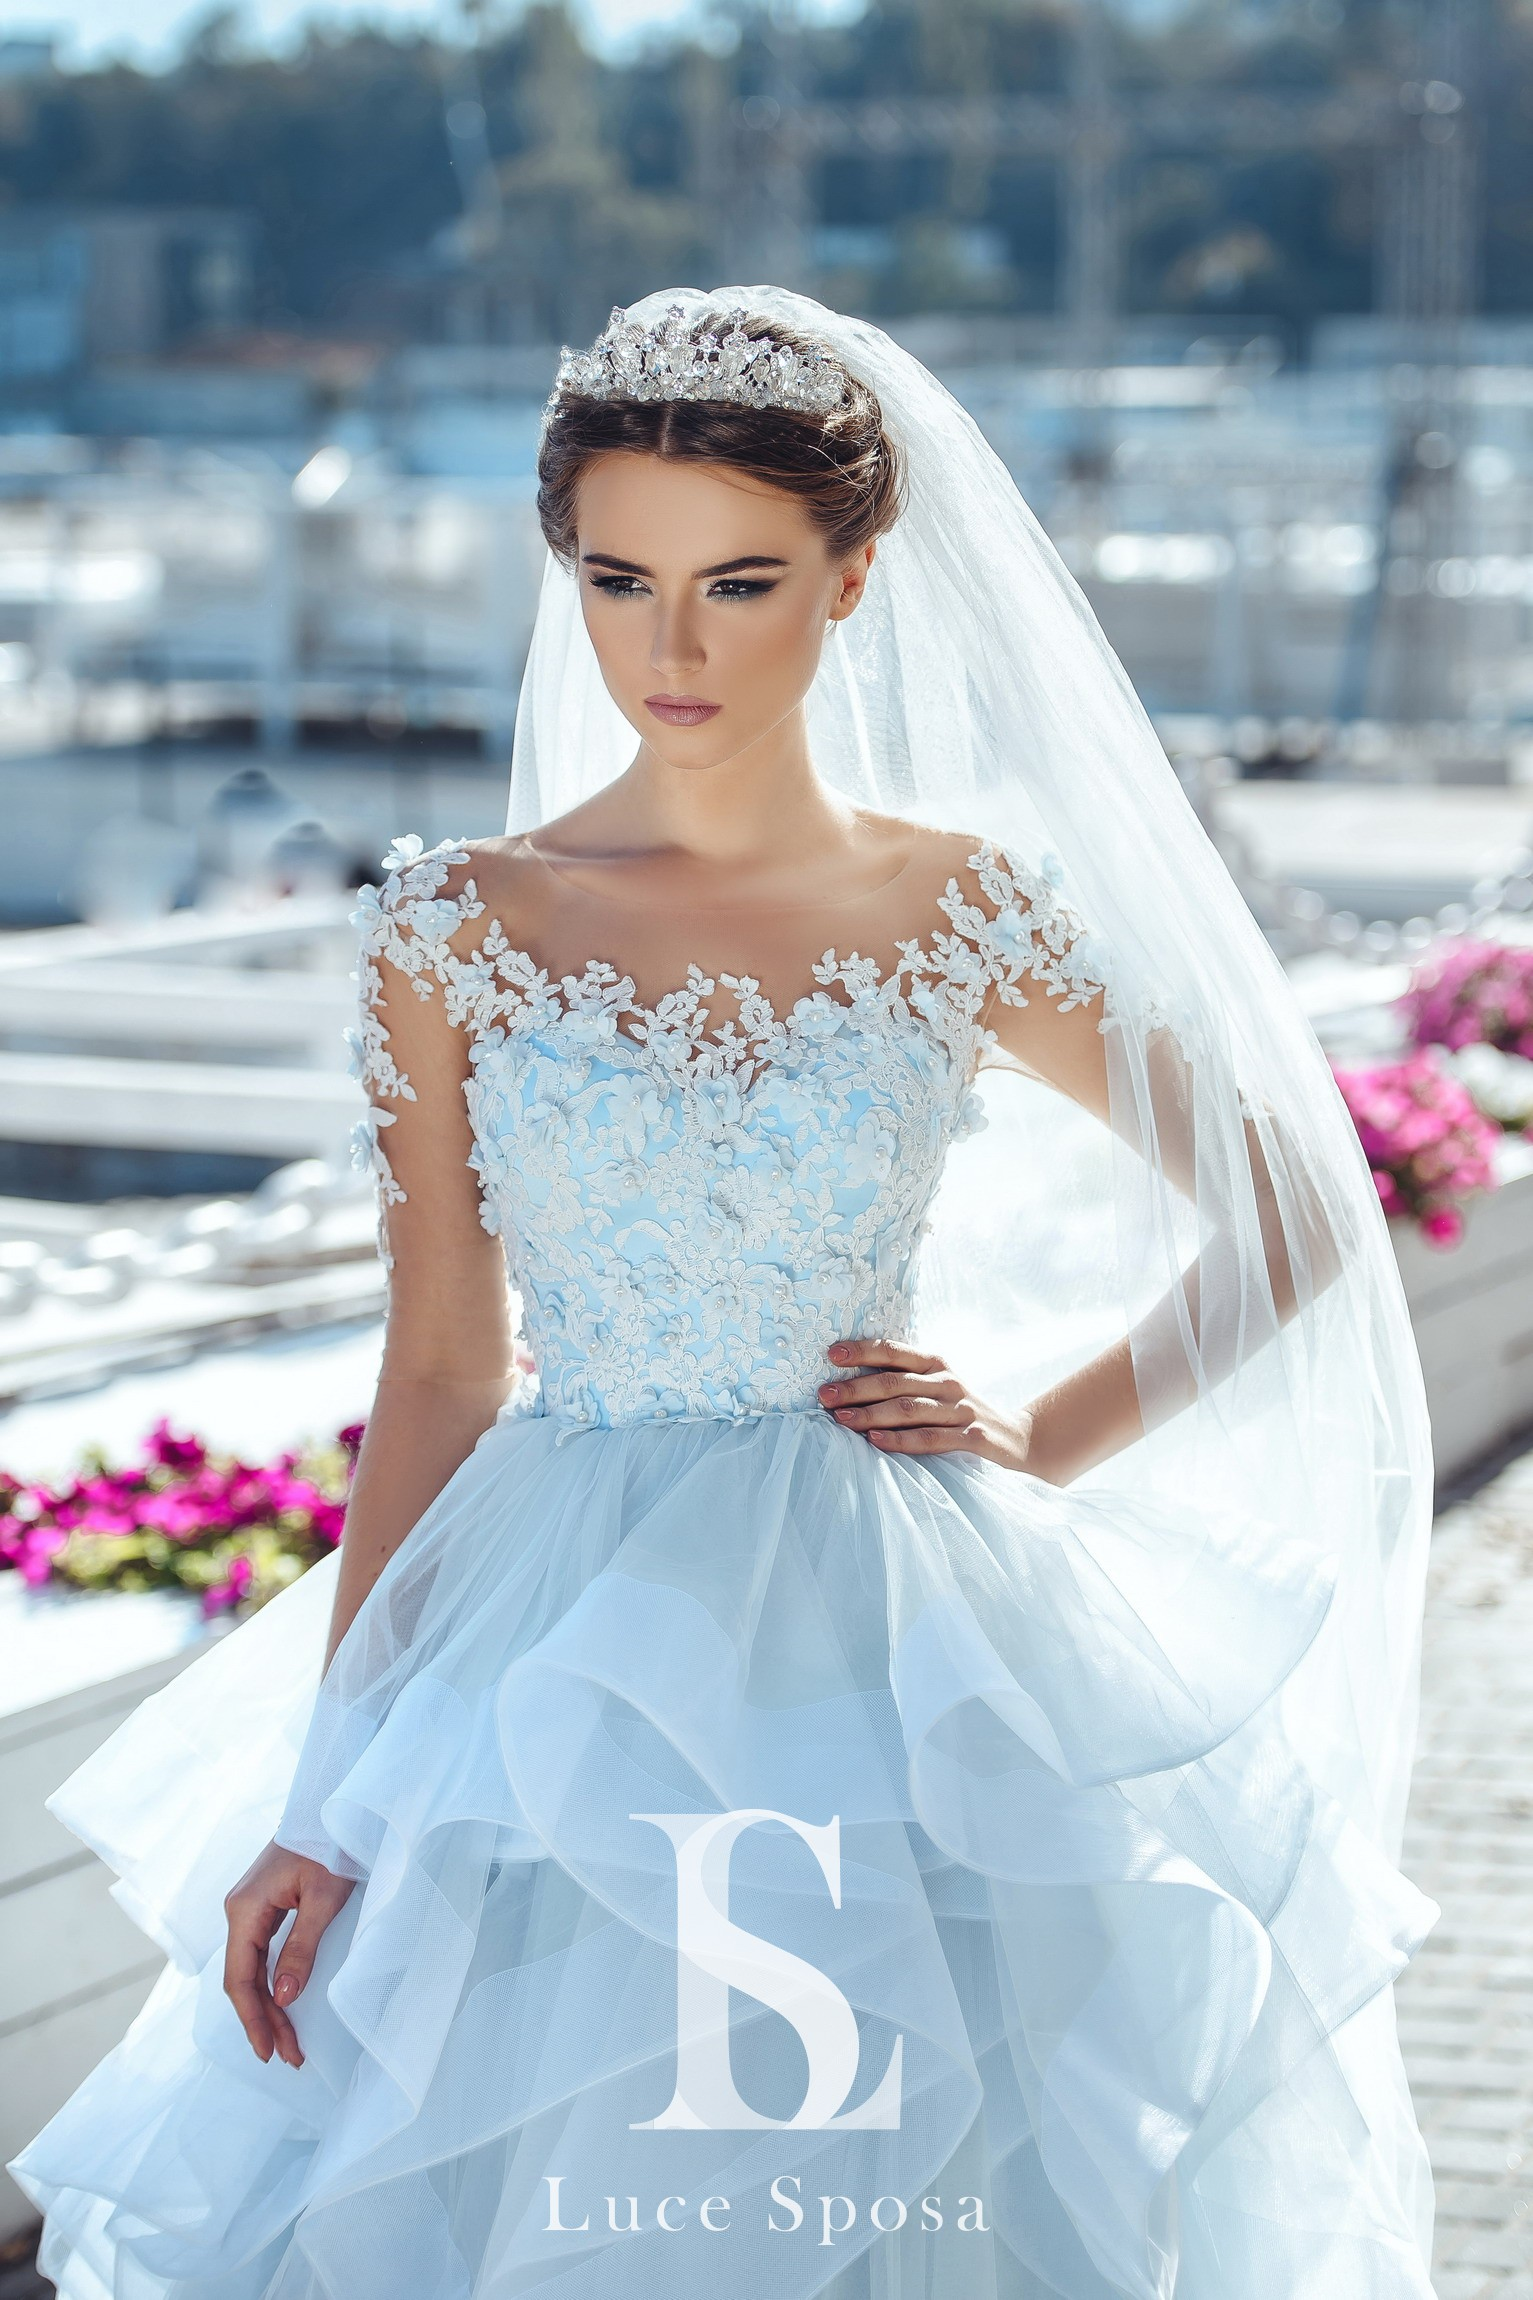 https://lucesposa.com/images/stories/virtuemart/product/ABB_47433.jpg